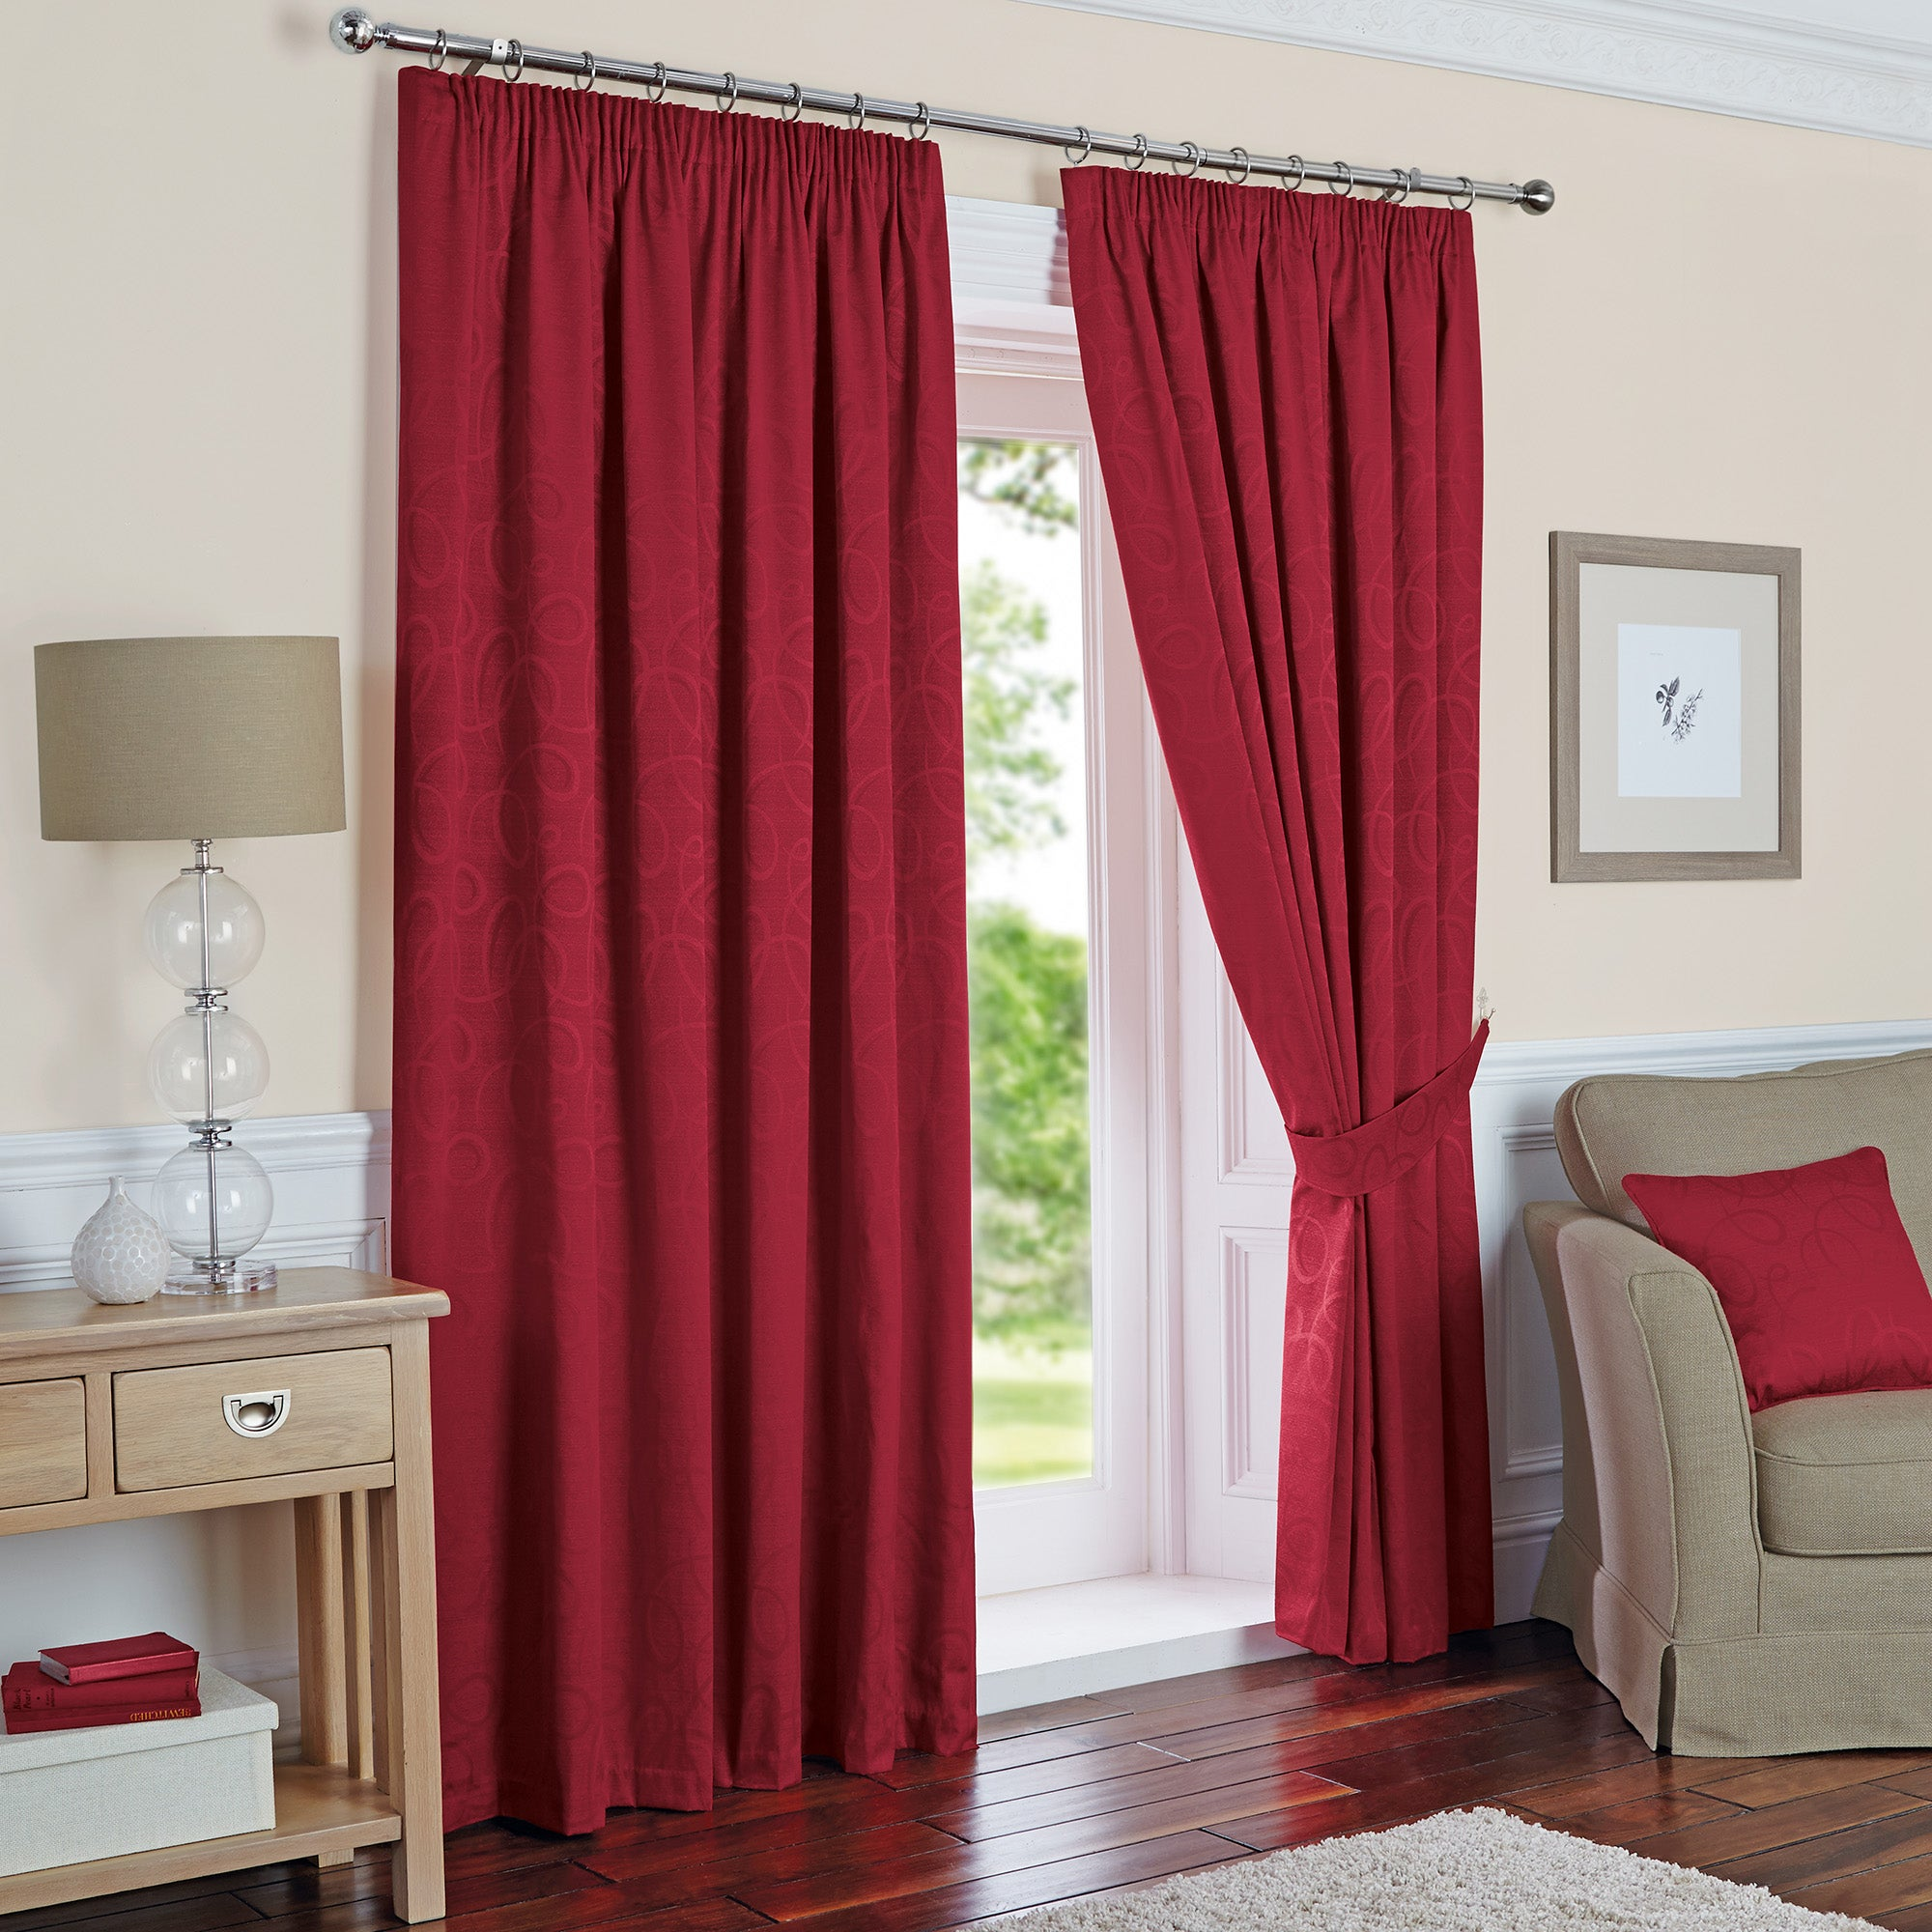 Buy cheap curtains compare curtains blinds prices for for Space fabric dunelm